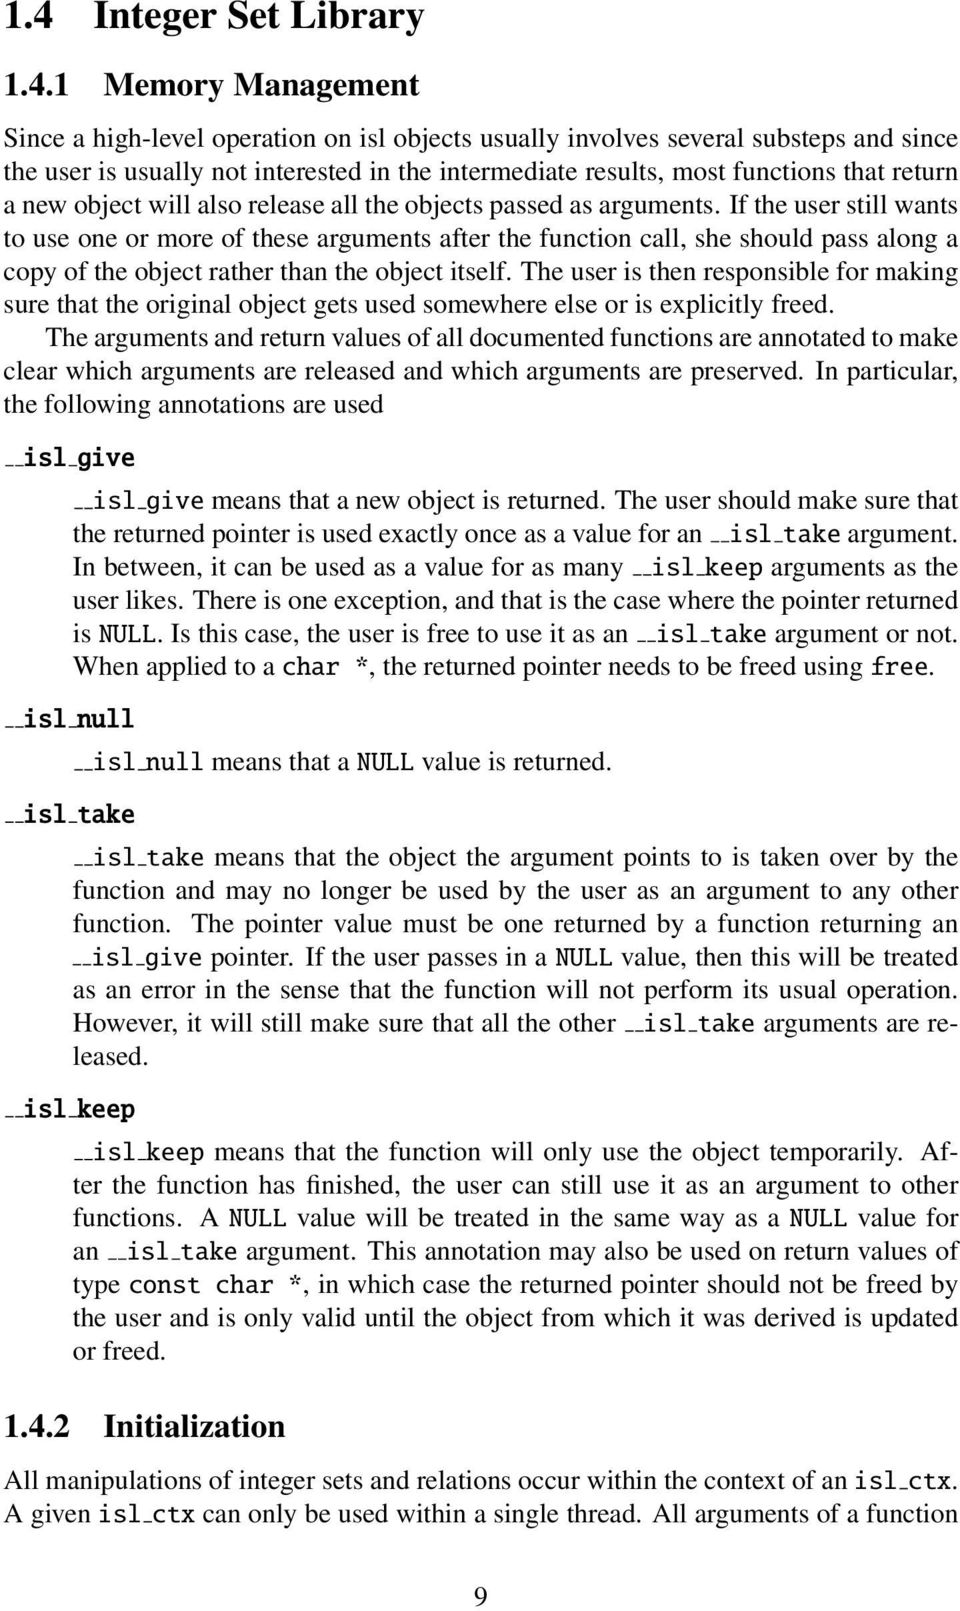 If the user still wants to use one or more of these arguments after the function call, she should pass along a copy of the object rather than the object itself.